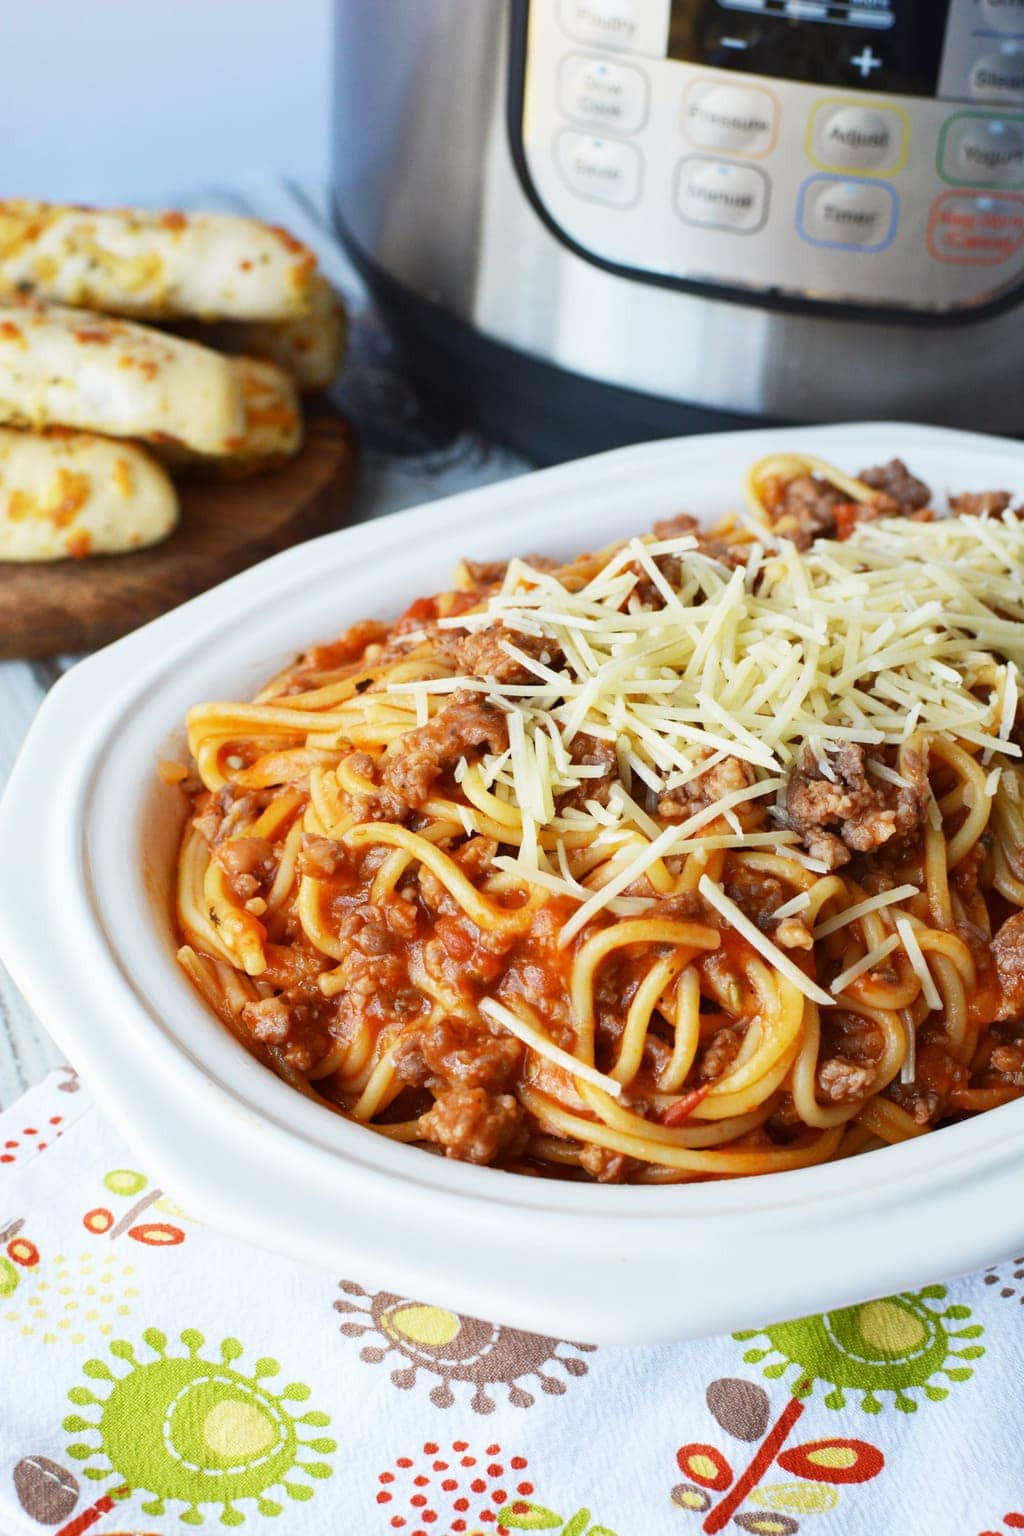 Spaghetti With Italian Sausage  Easy Instant Pot Spaghetti With Italian Sausage Dinner